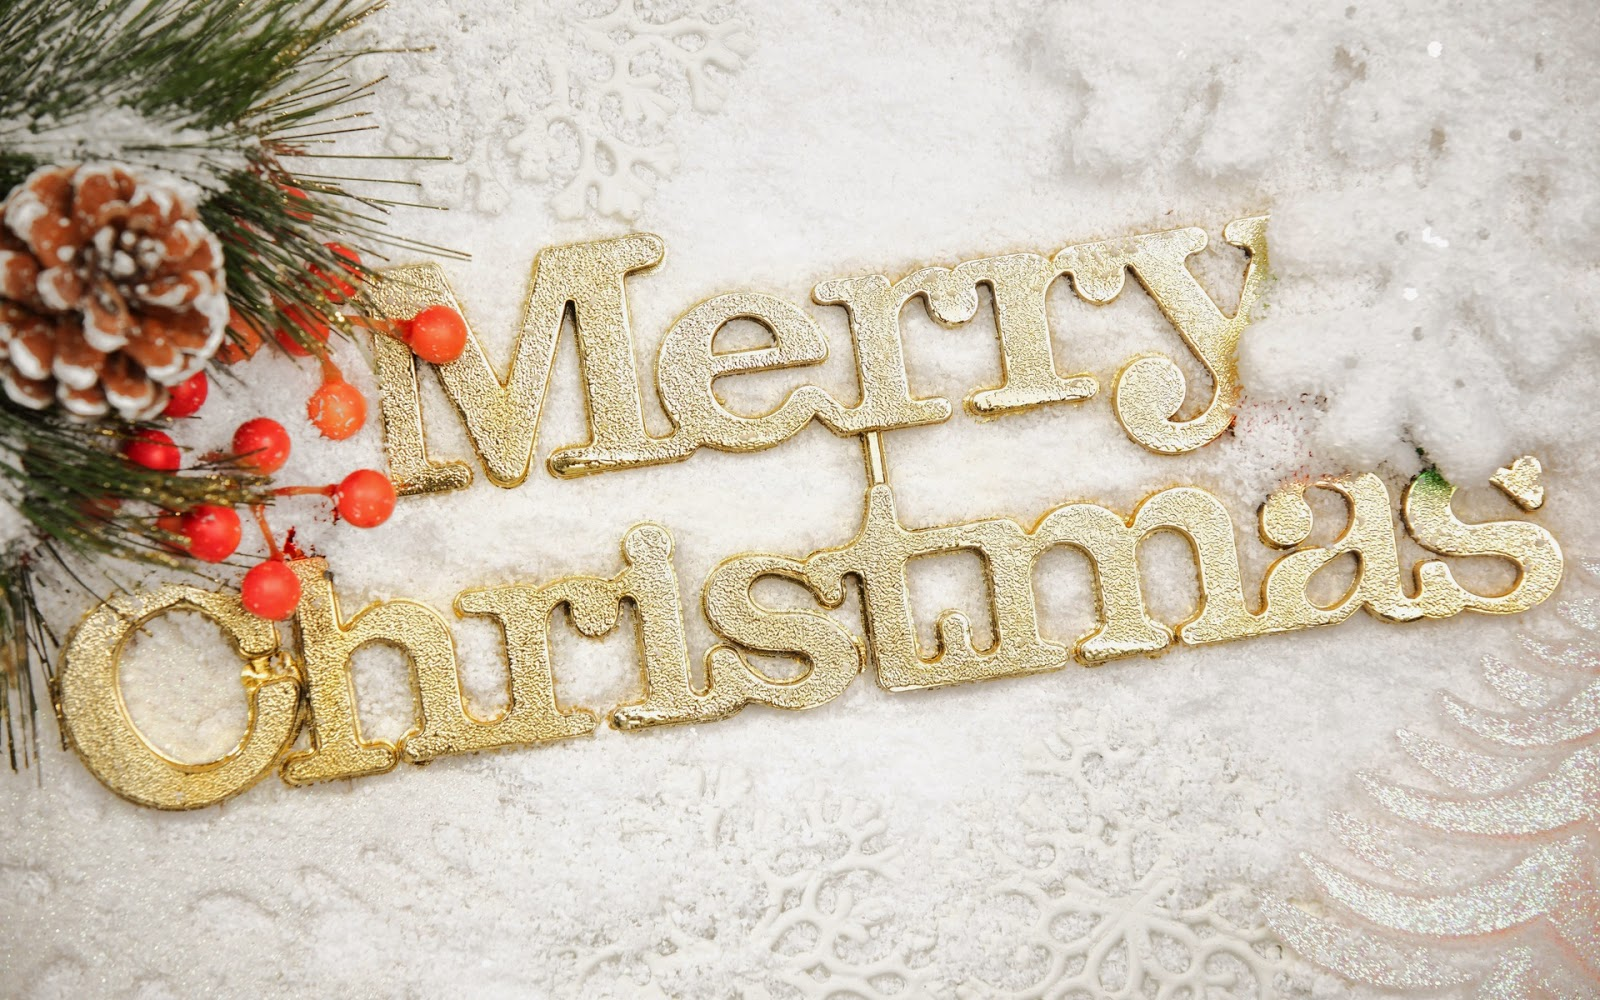 merry-Christmas-wallpapers-free-download-for-sending-wishes-to-friends.jpg